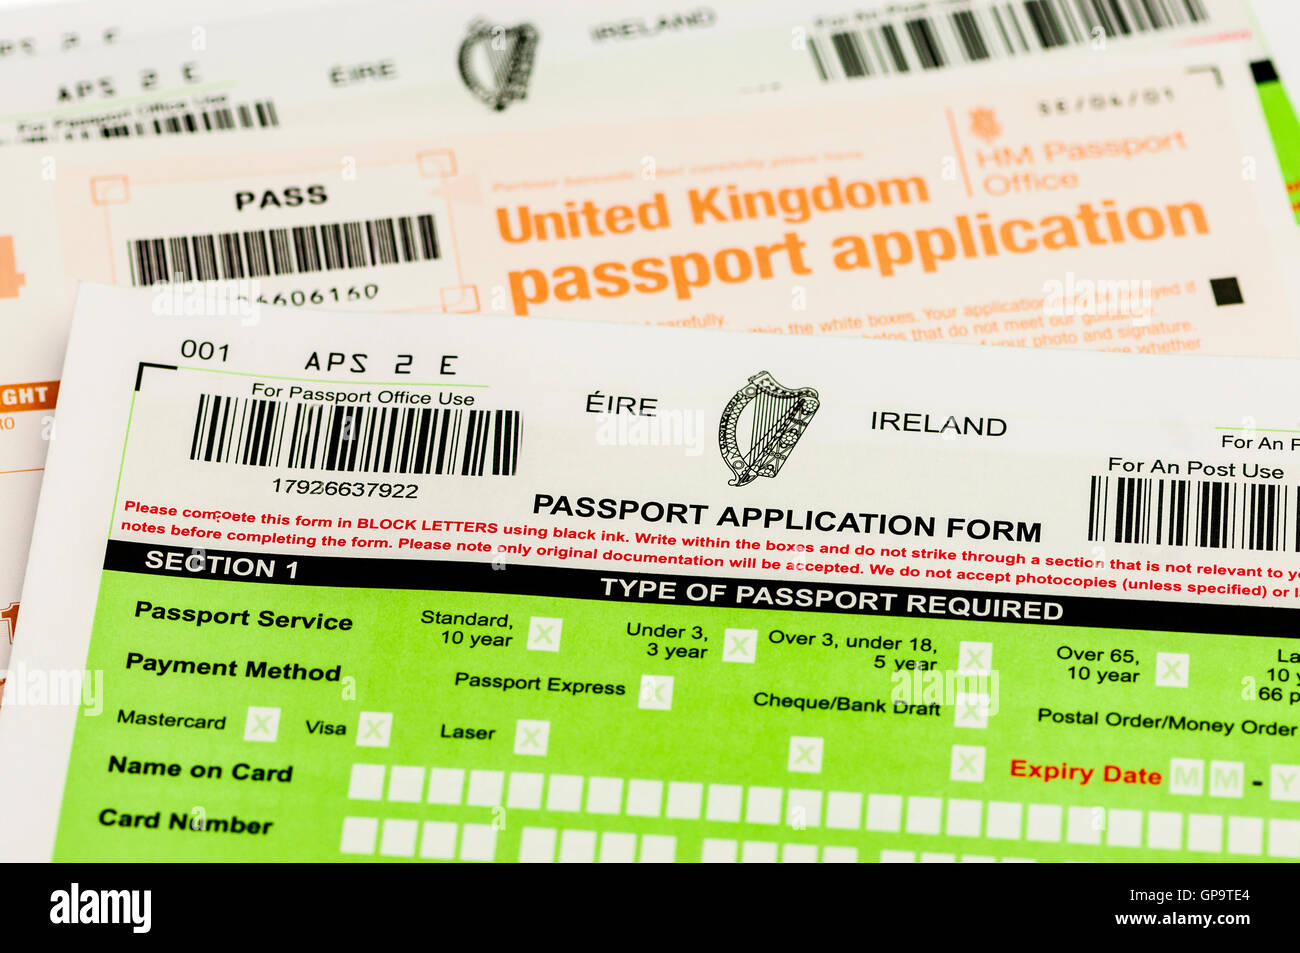 Passport Application Forms For Both Republic Of Ireland Eire And